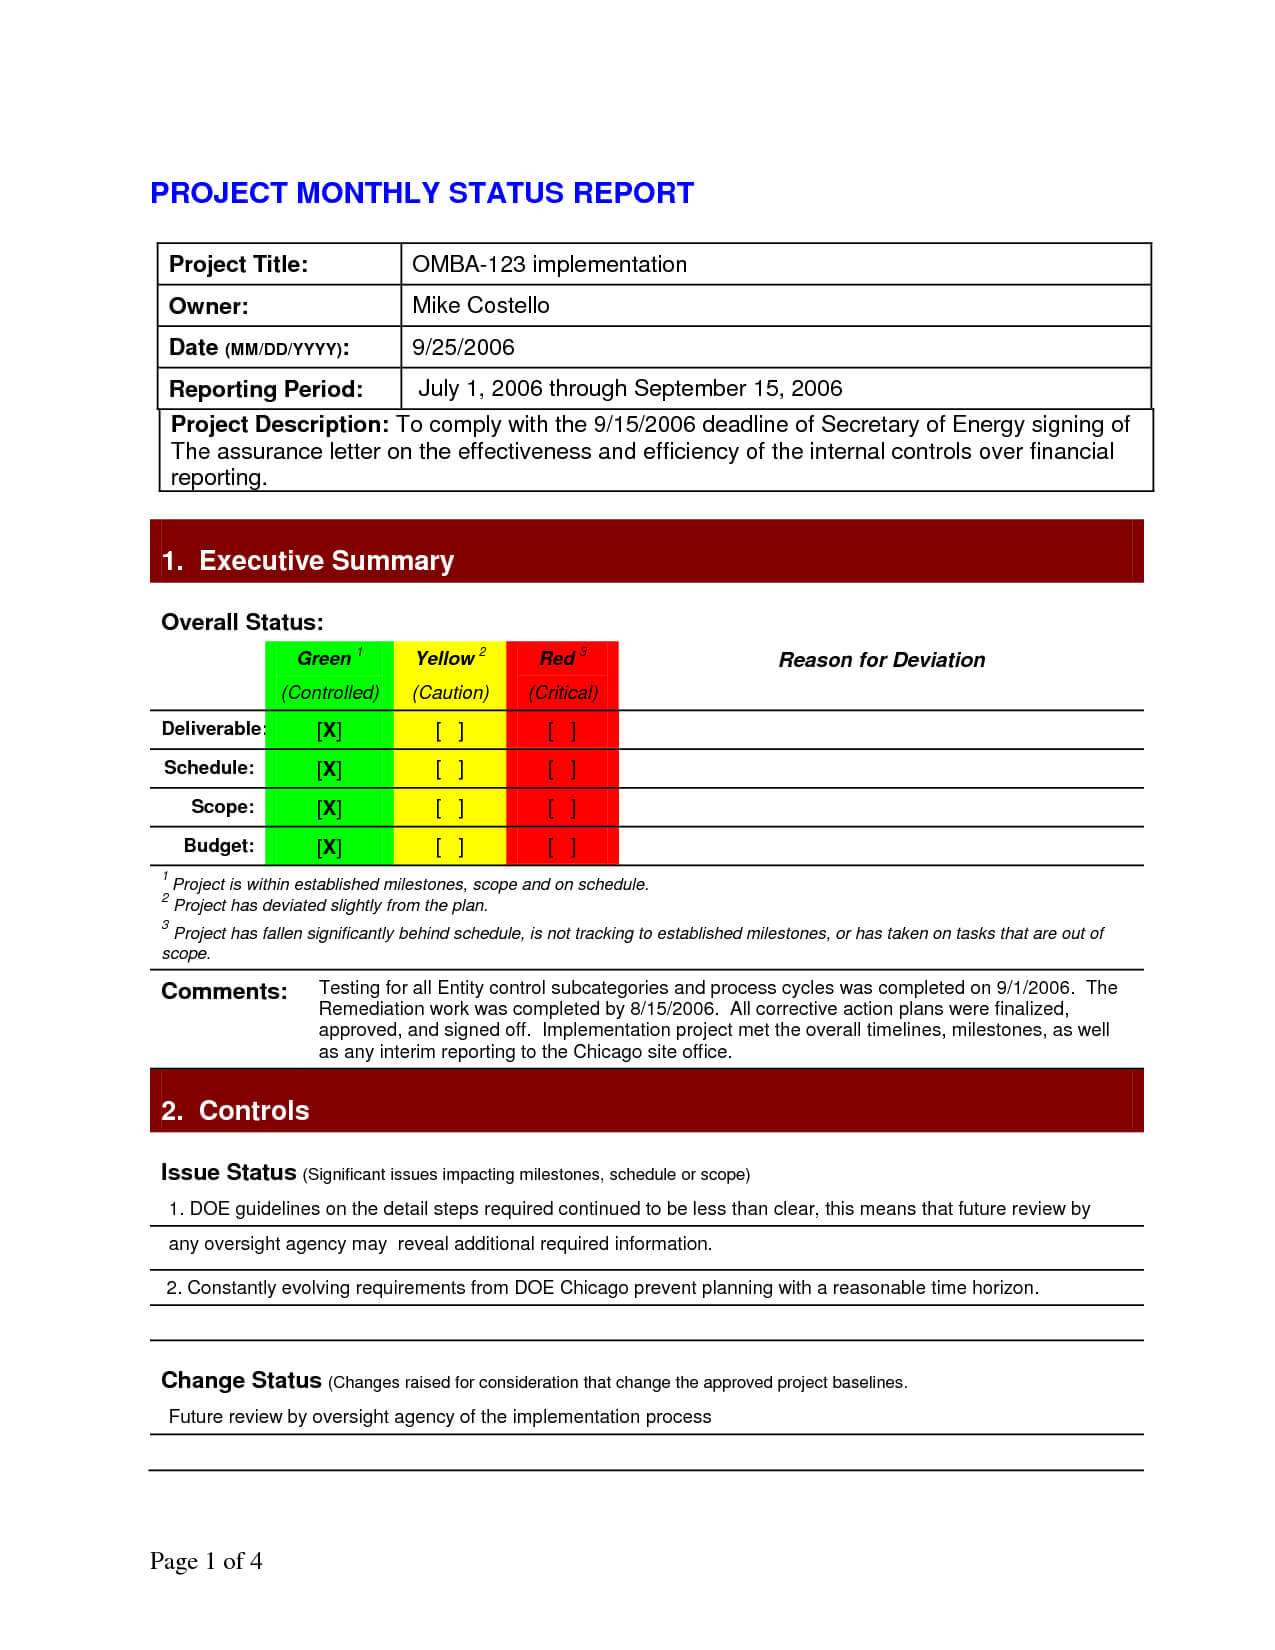 Pinlesedi Matlholwa On Templates   Progress Report Within Executive Summary Project Status Report Template